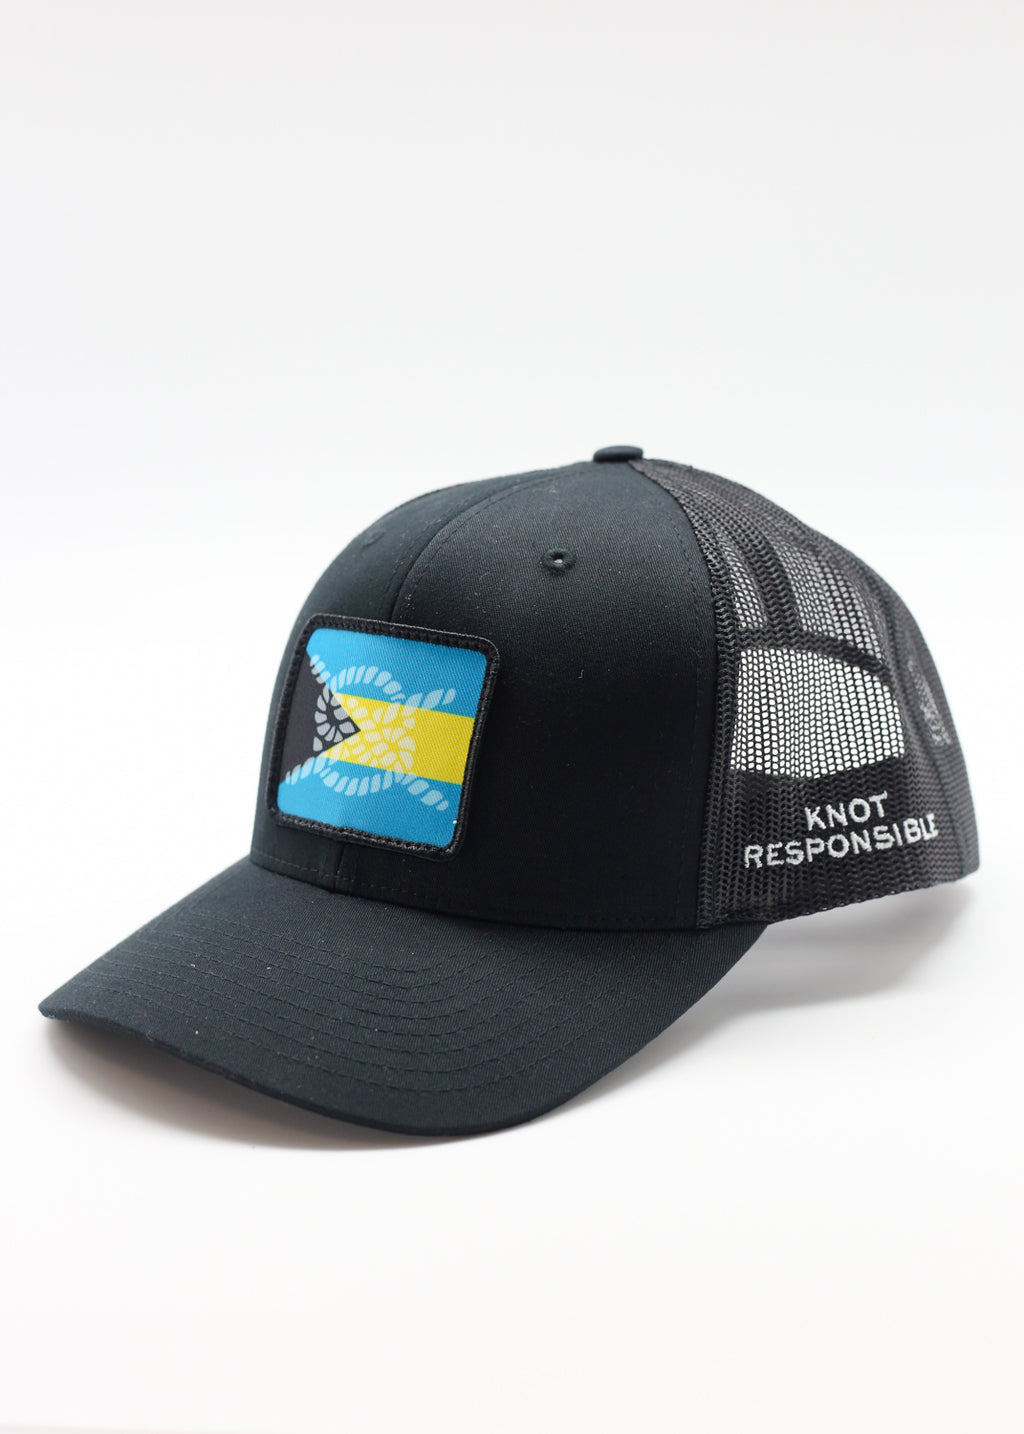 Limited Edition Abaco Strong Original Trucker Hat- Black